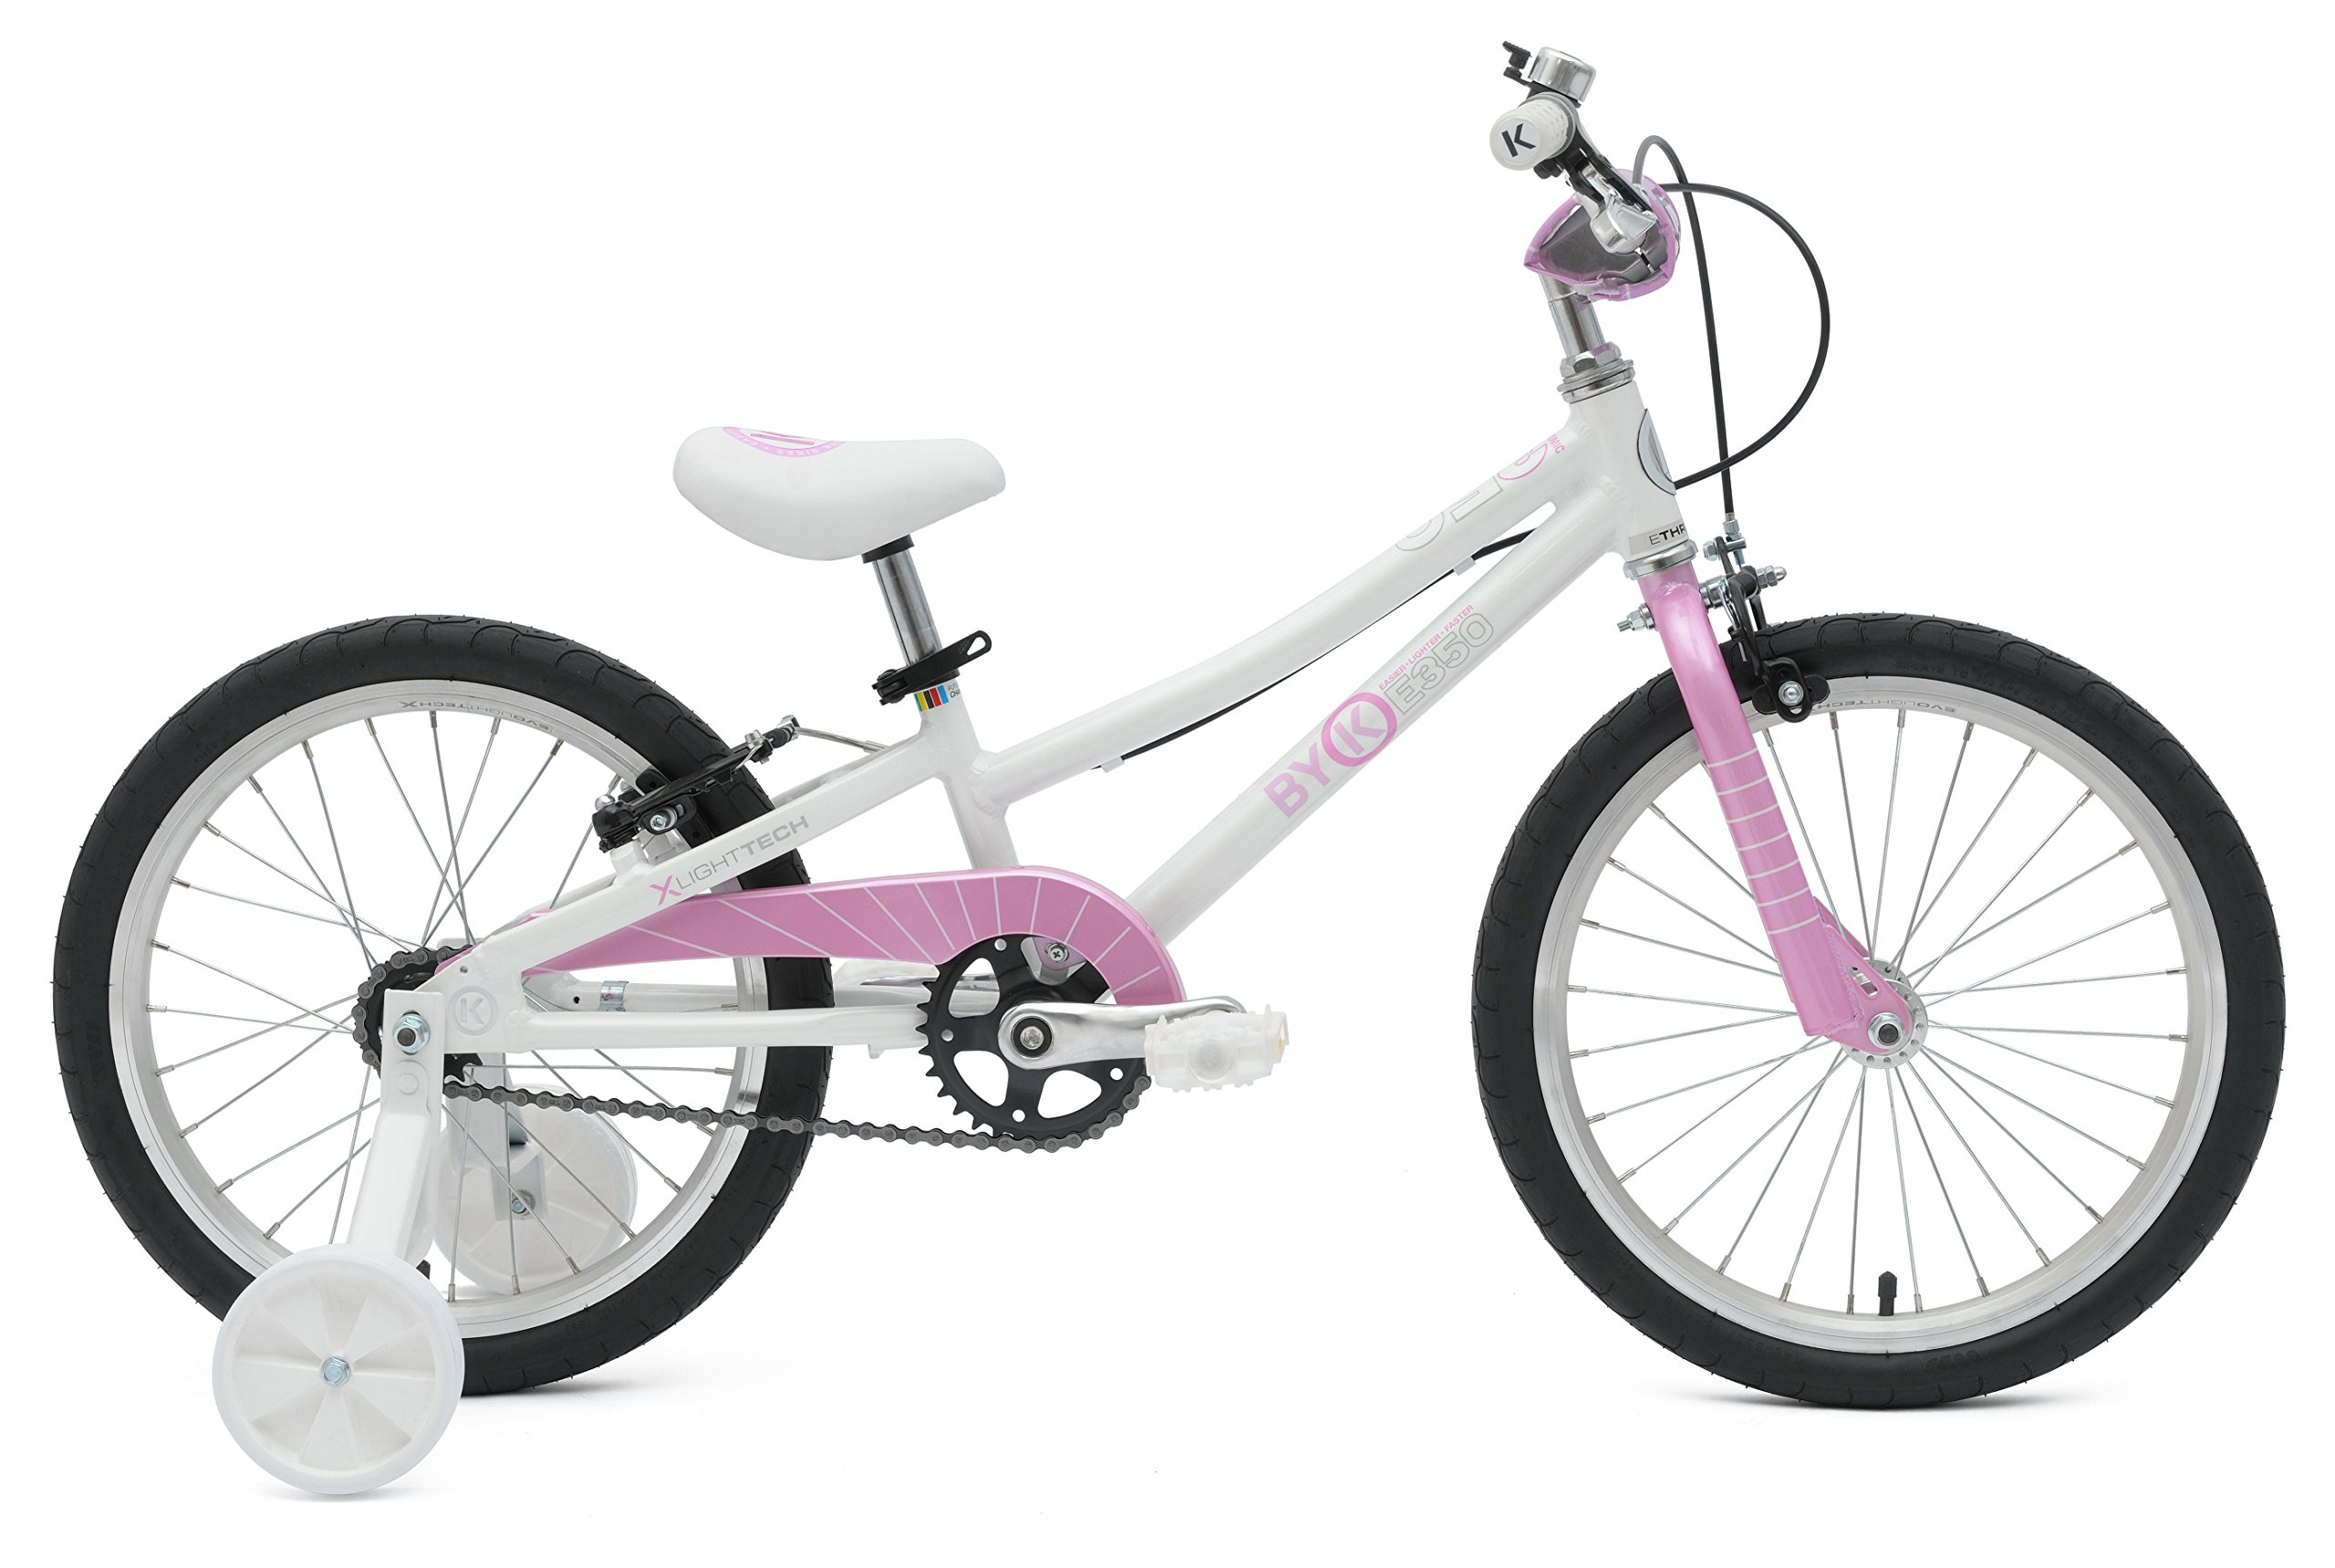 ByK Bikes E350 Kids Bike (Pretty Pink)